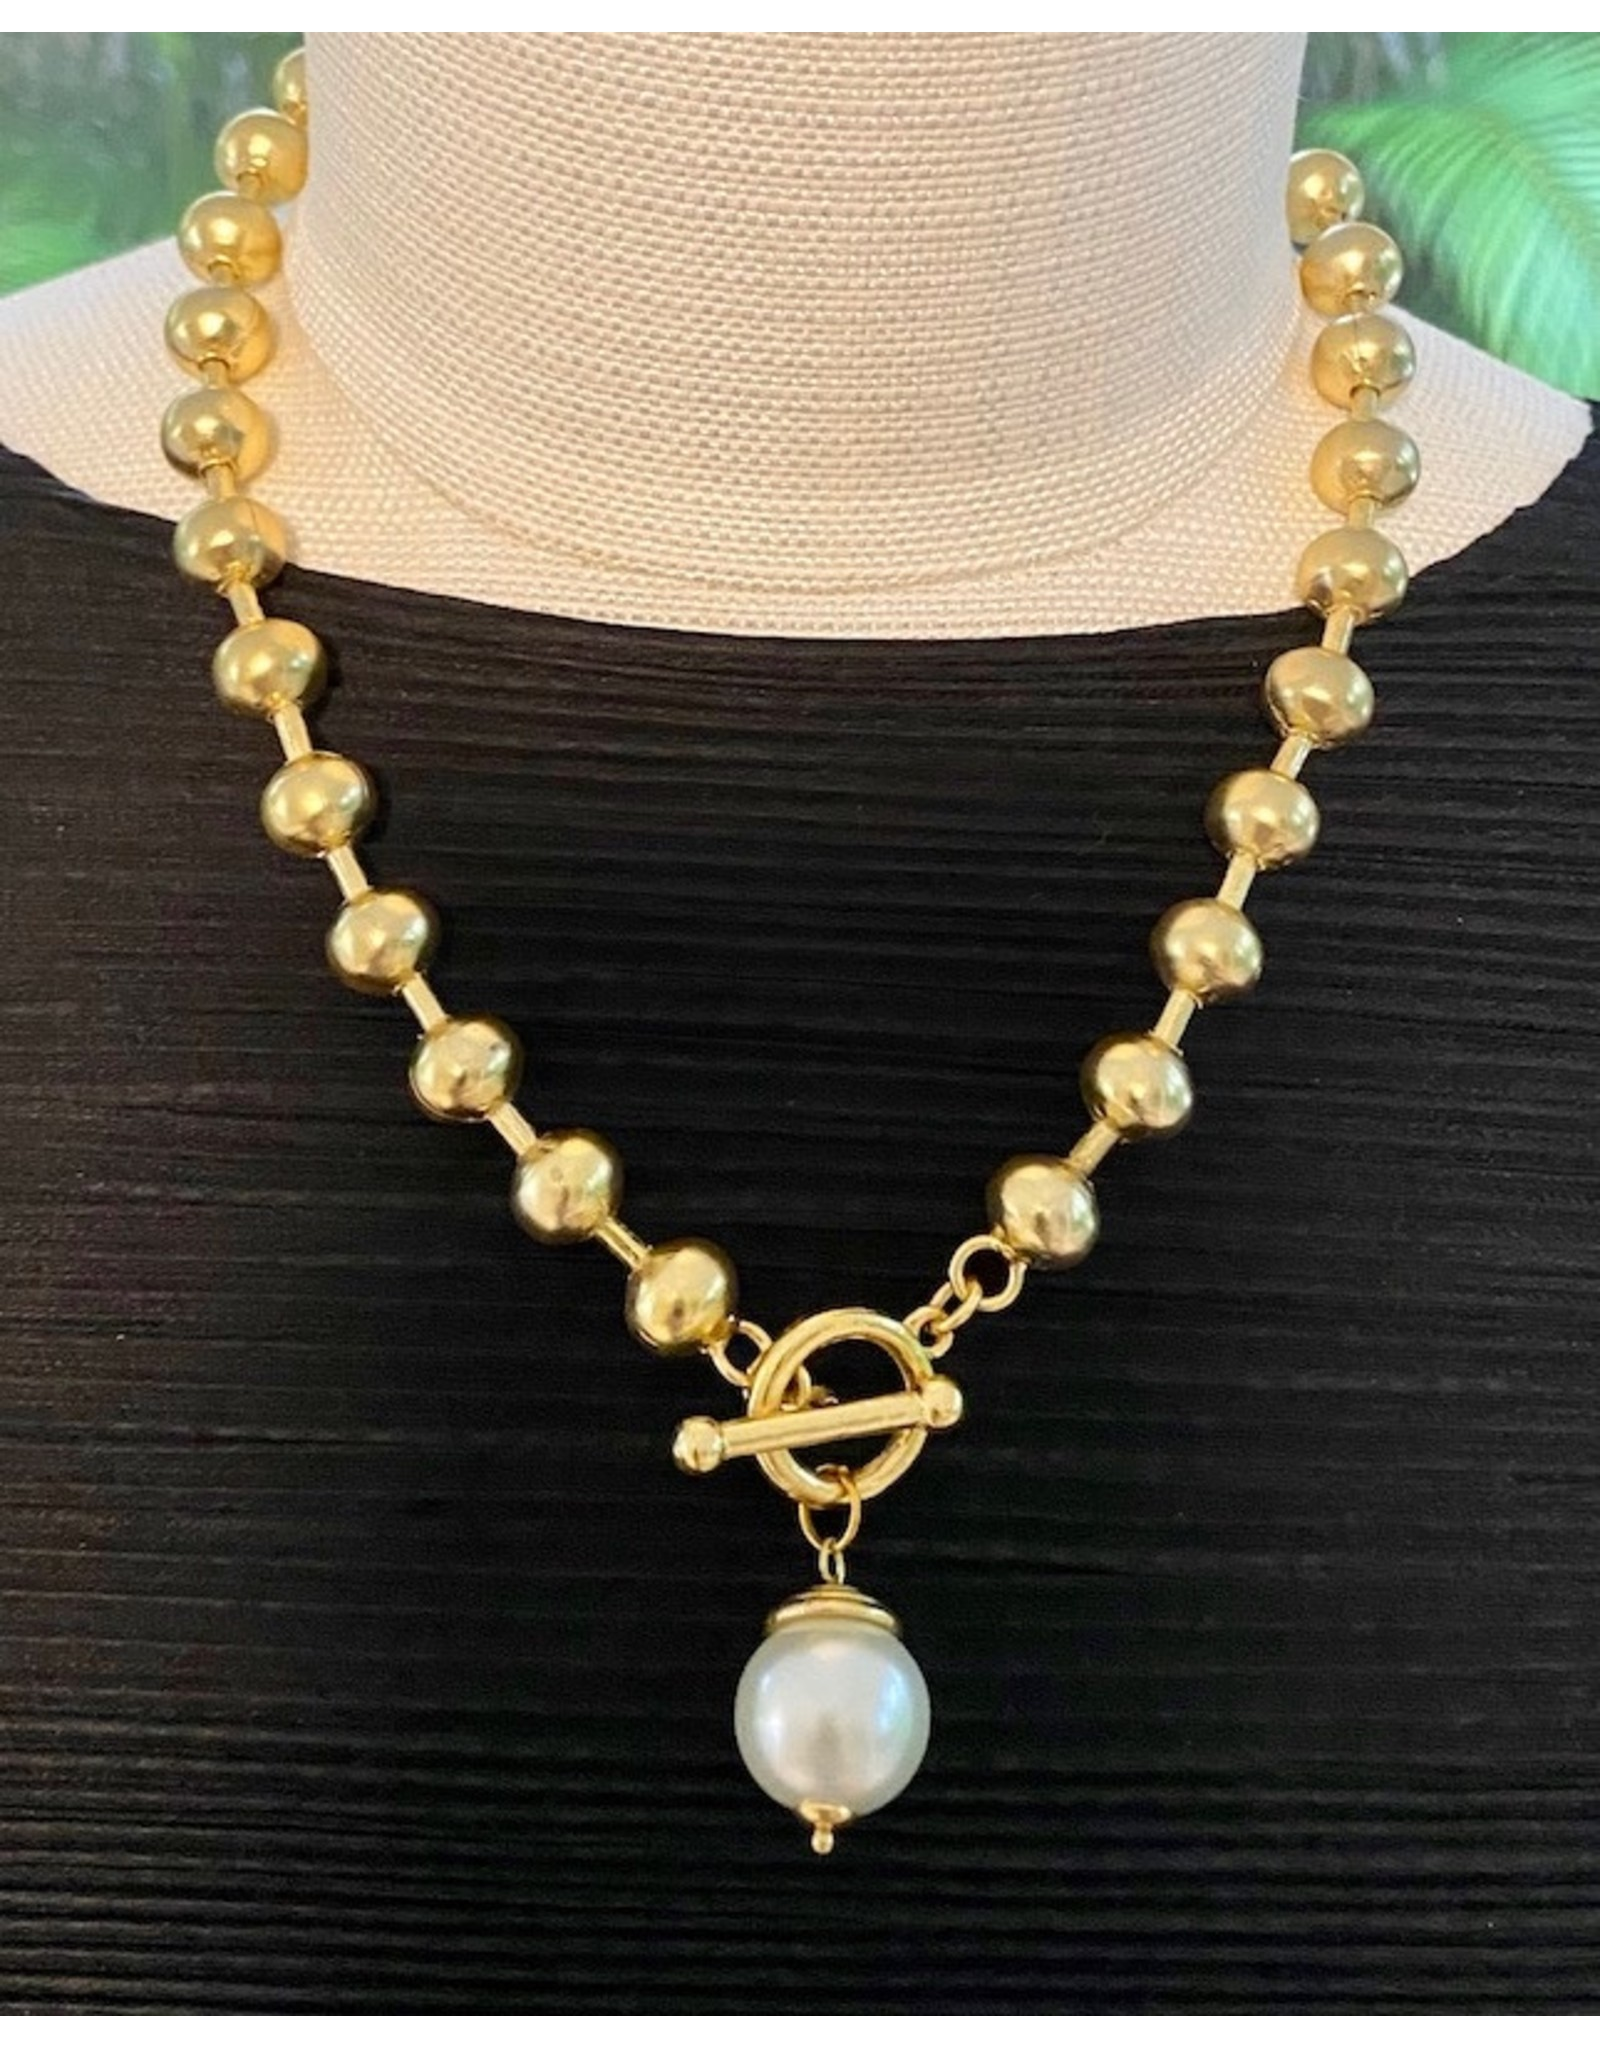 Karin Sultan Gold Pearl Necklace